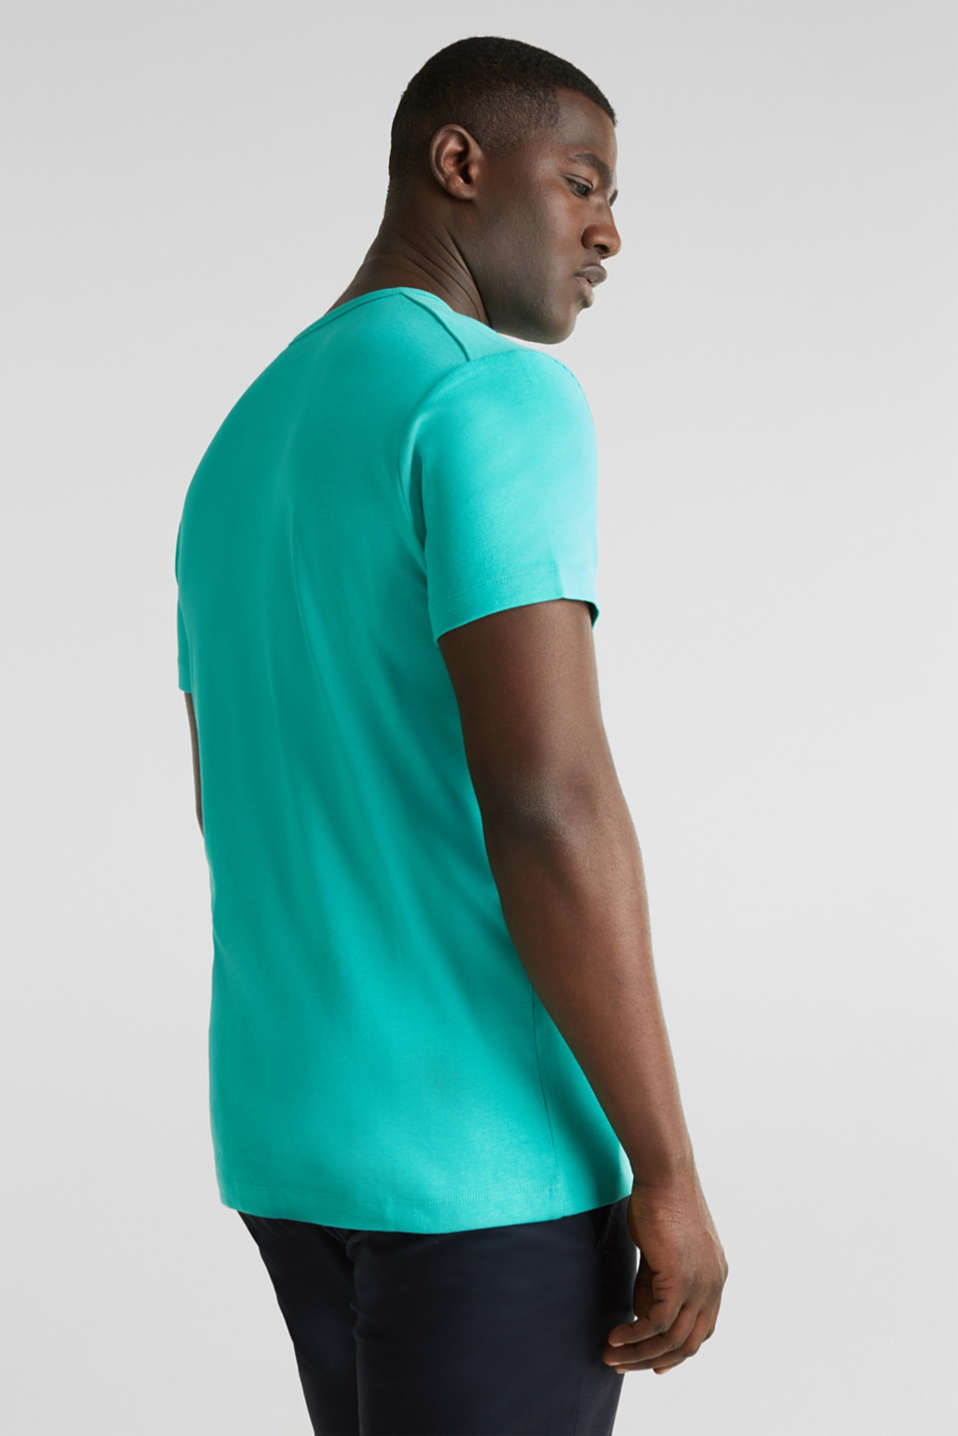 Ribbed jersey top made of 100% cotton, LIGHT TURQUOISE, detail image number 3